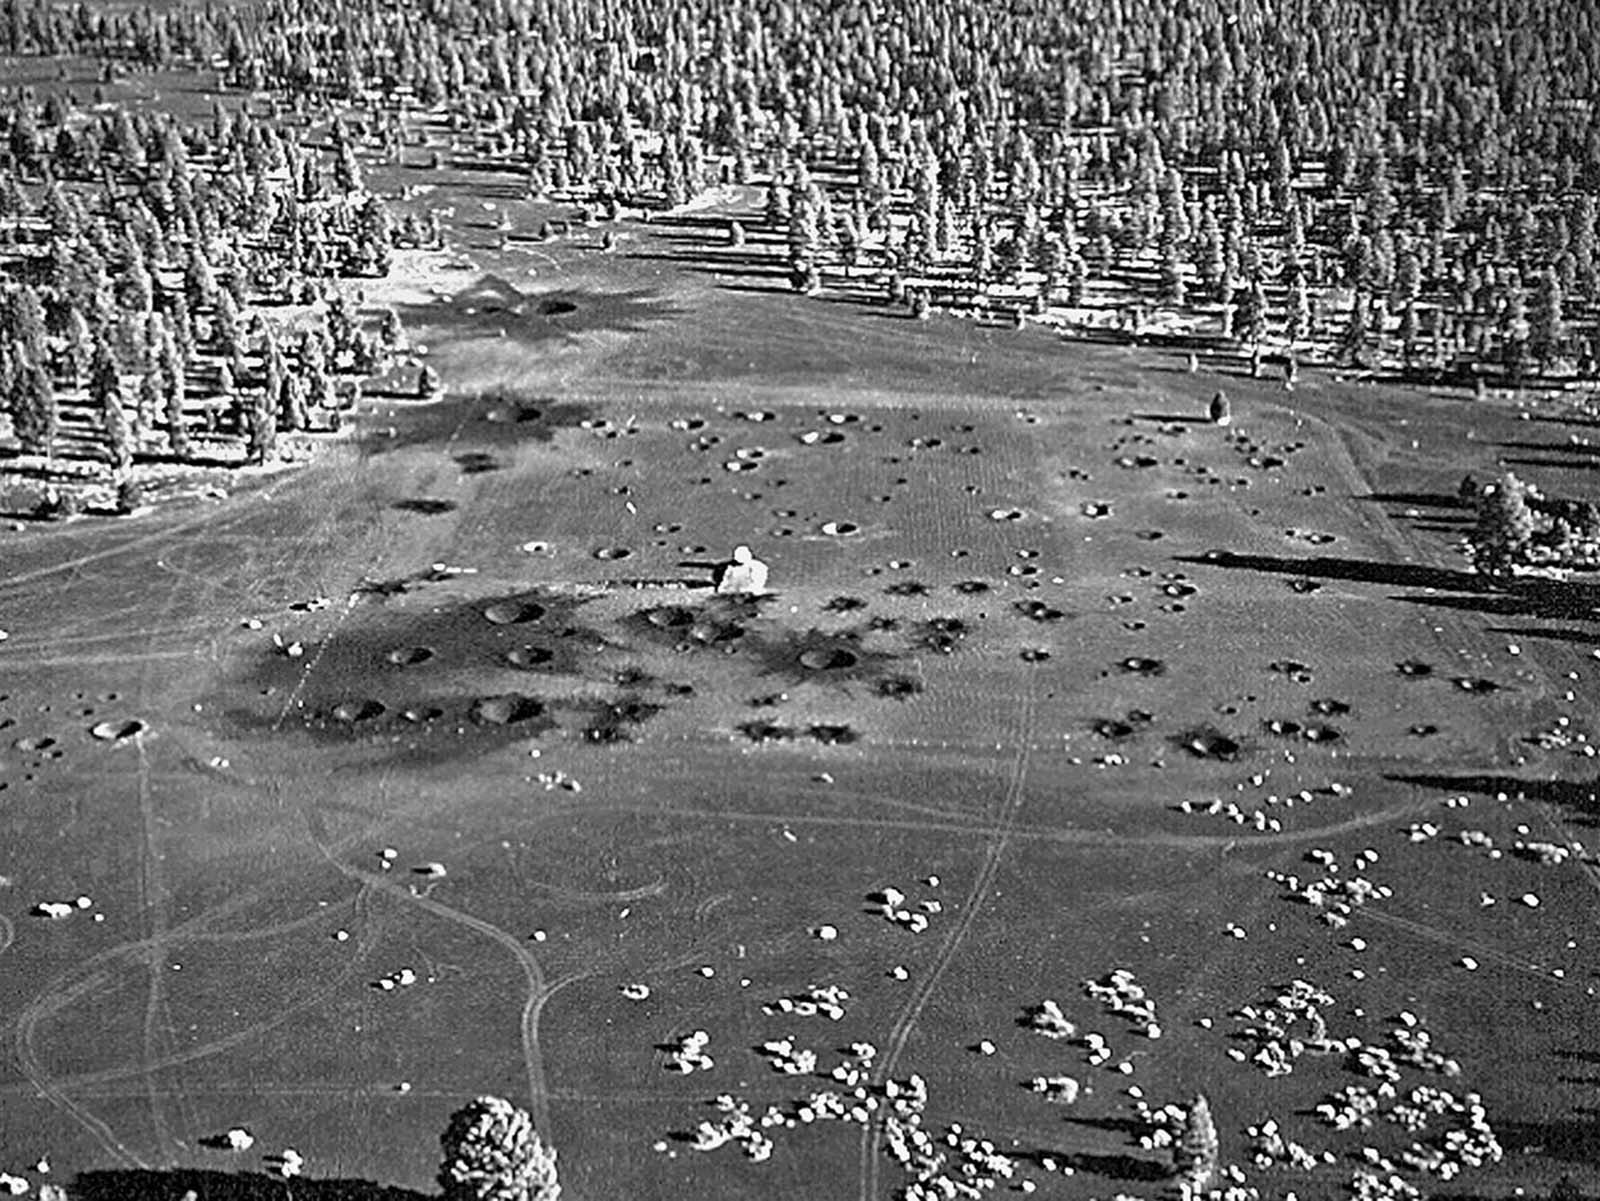 Cinder Lake Crater Field #1, photographed after an additional 96 craters were added in October 1967.